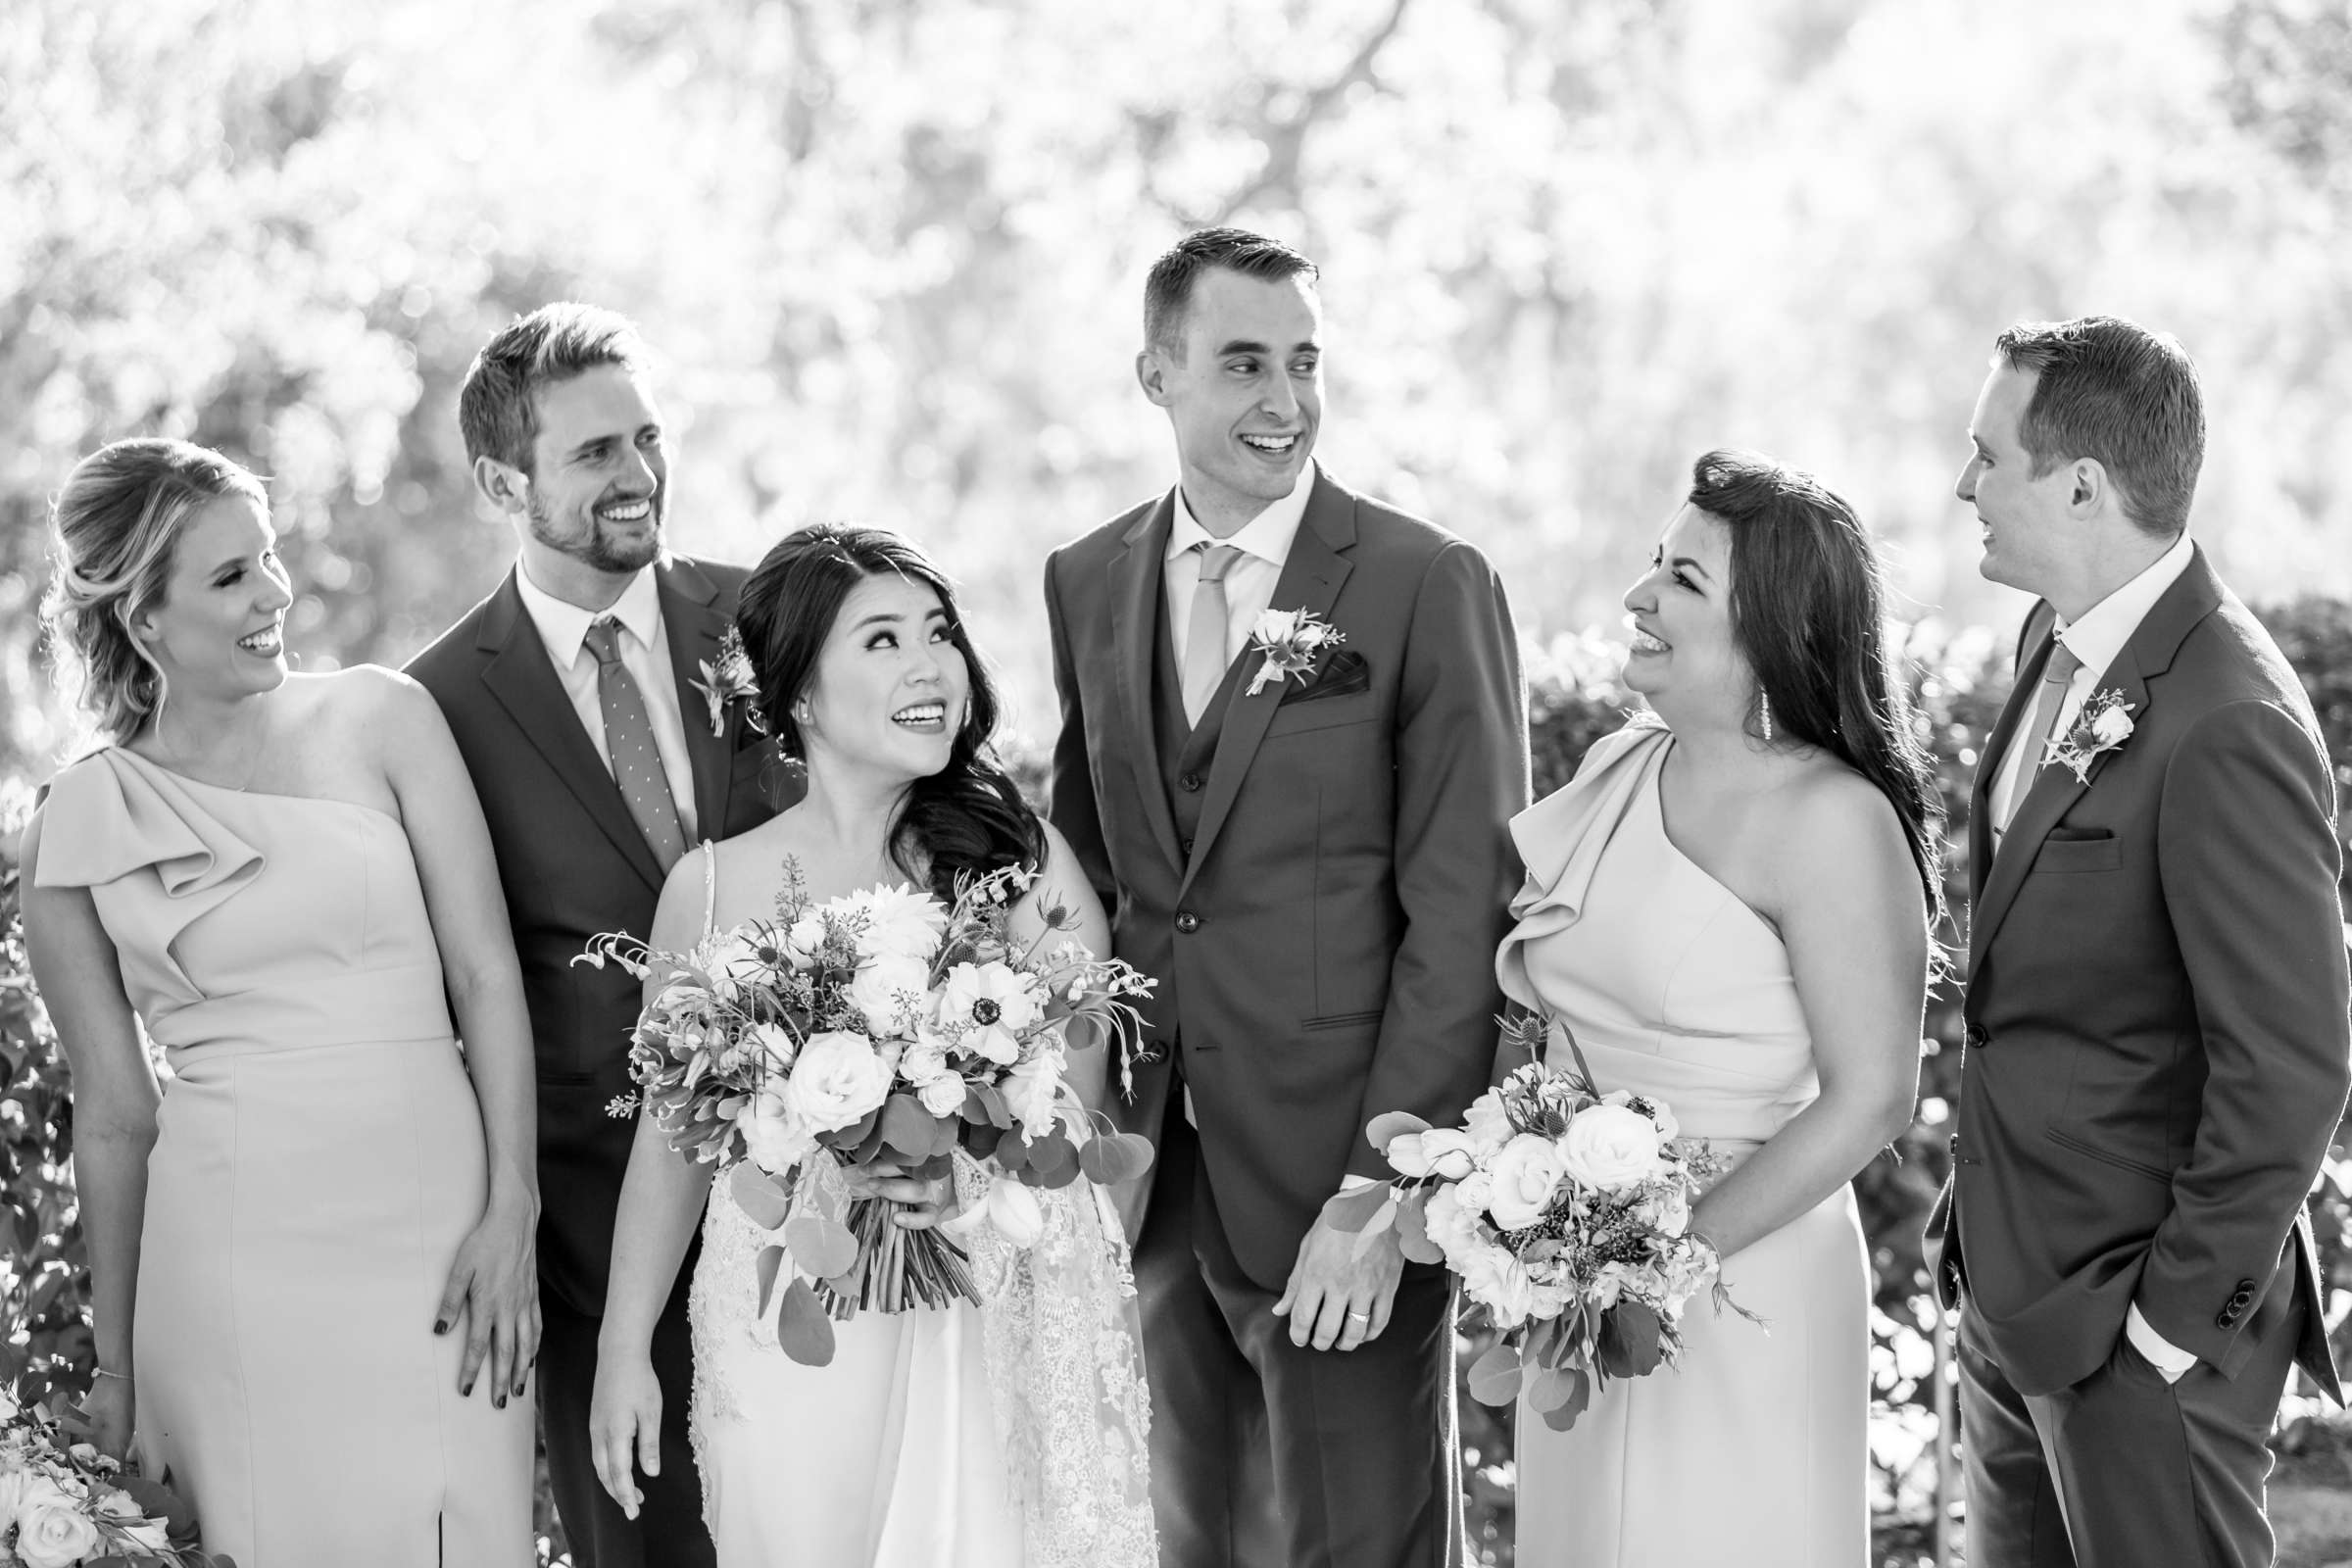 Mt Woodson Castle Wedding coordinated by I Do Weddings, Aya and Jared Wedding Photo #486966 by True Photography